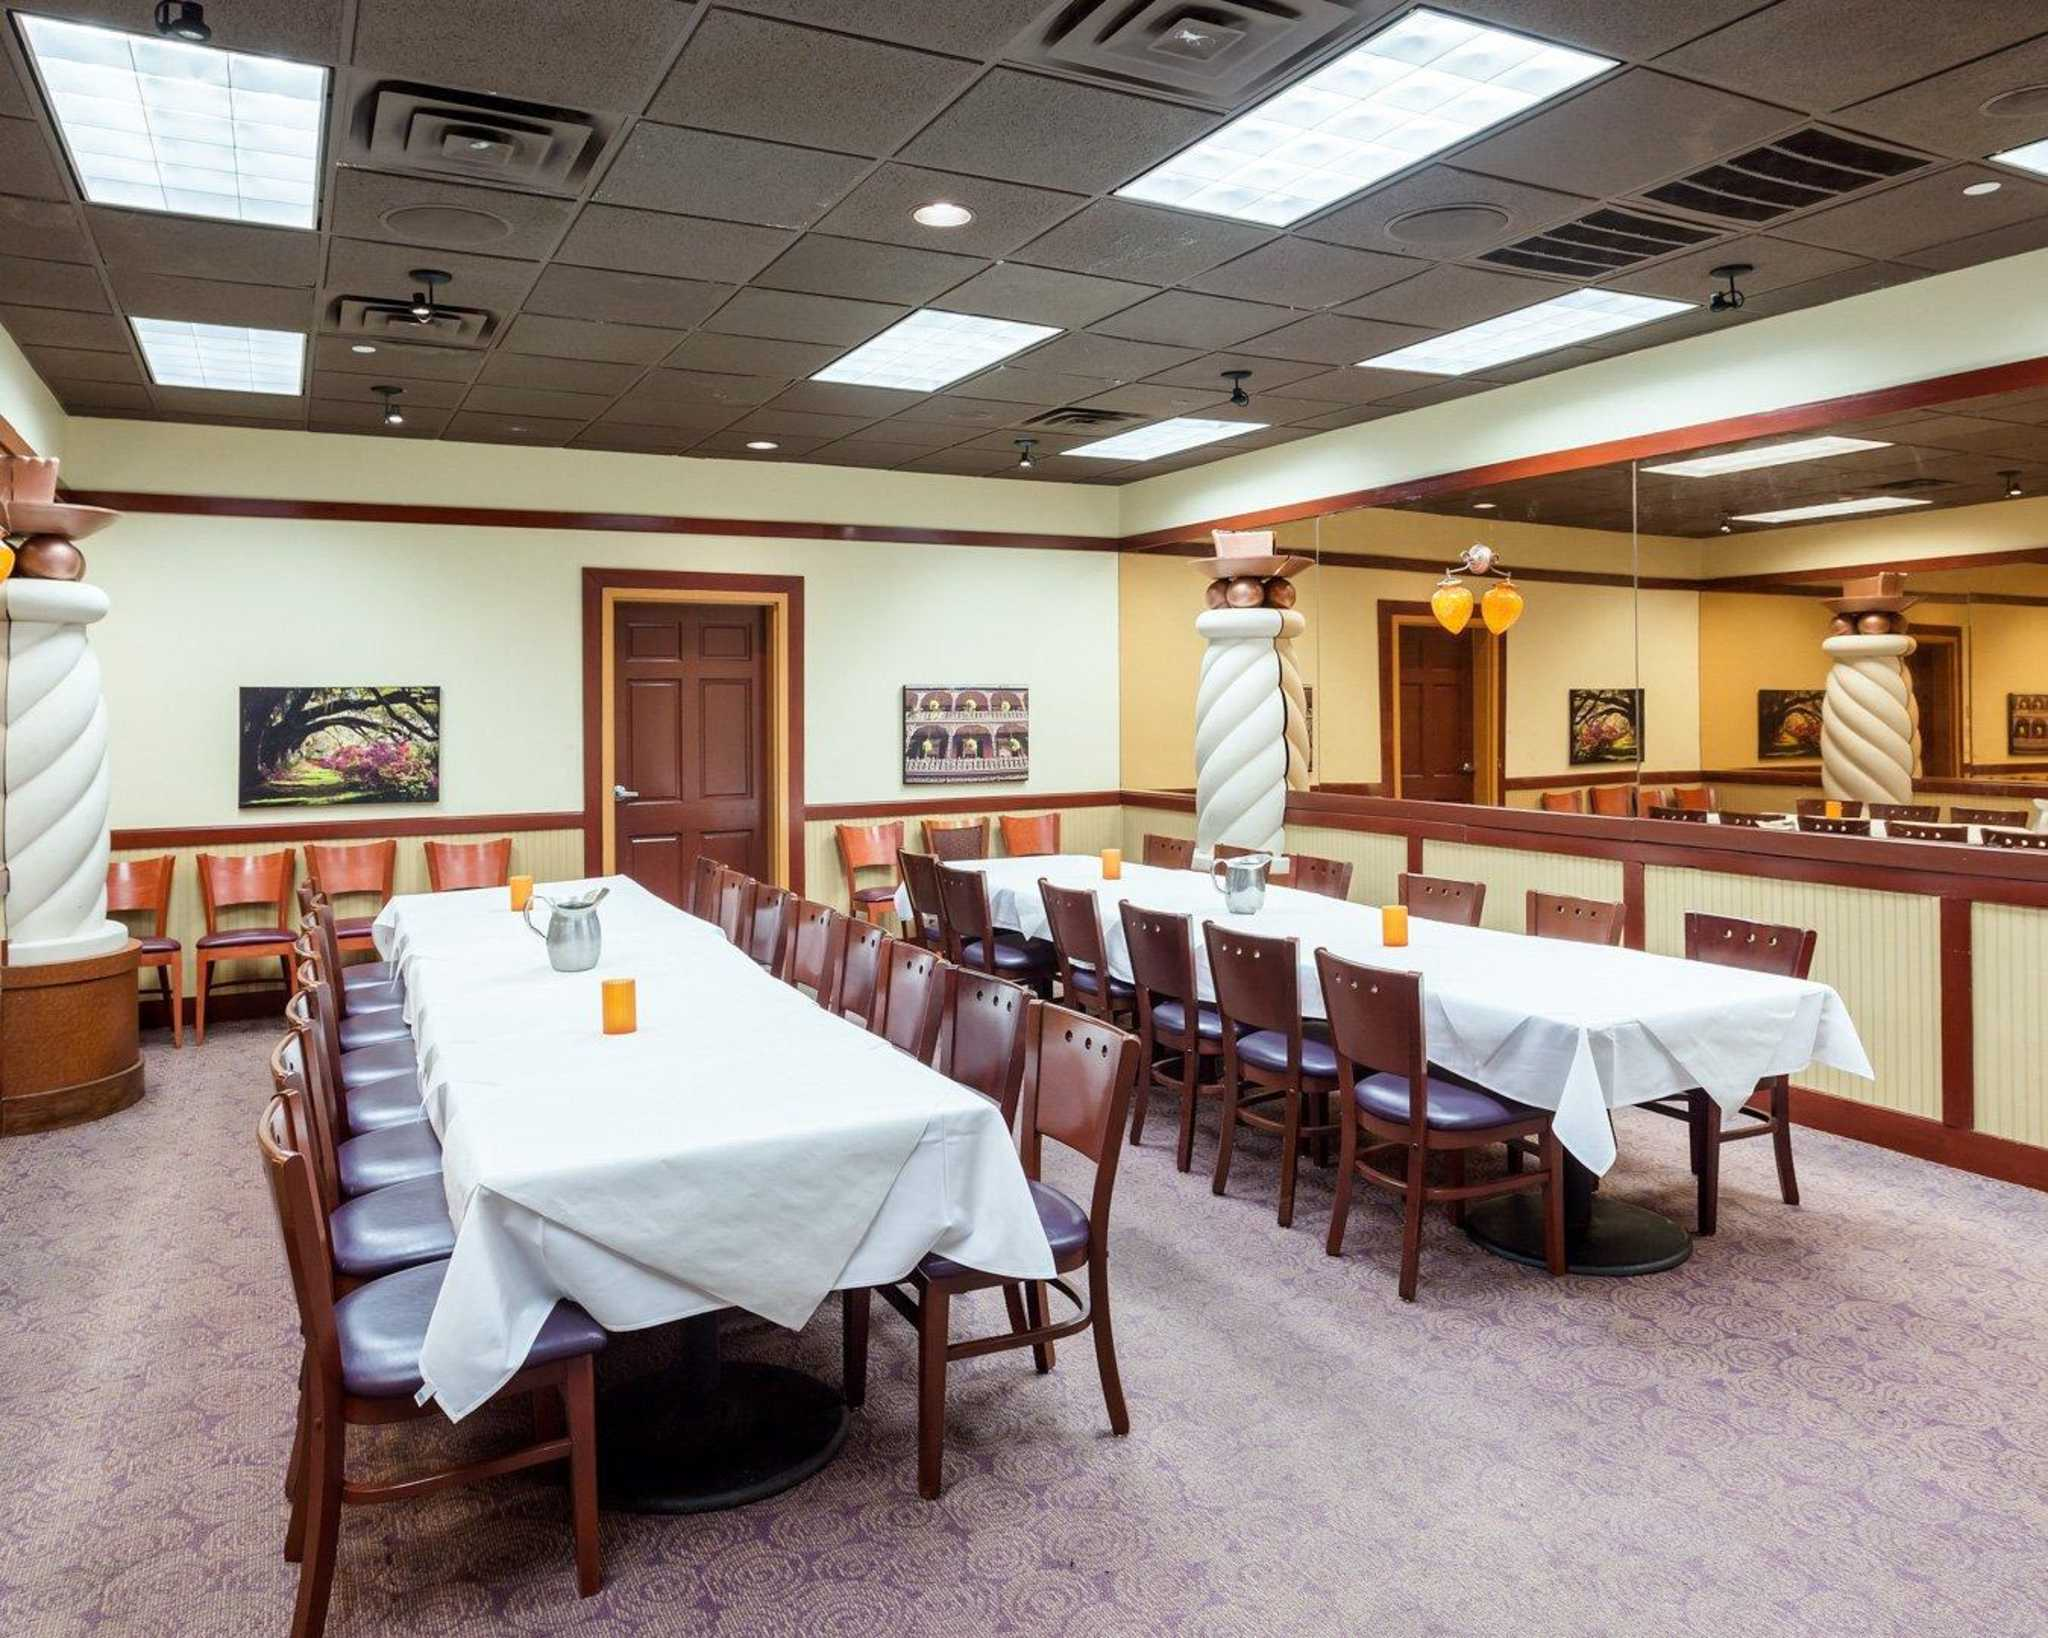 Clarion hotel grand boutique coupons near me in new for Boutique hotels near me